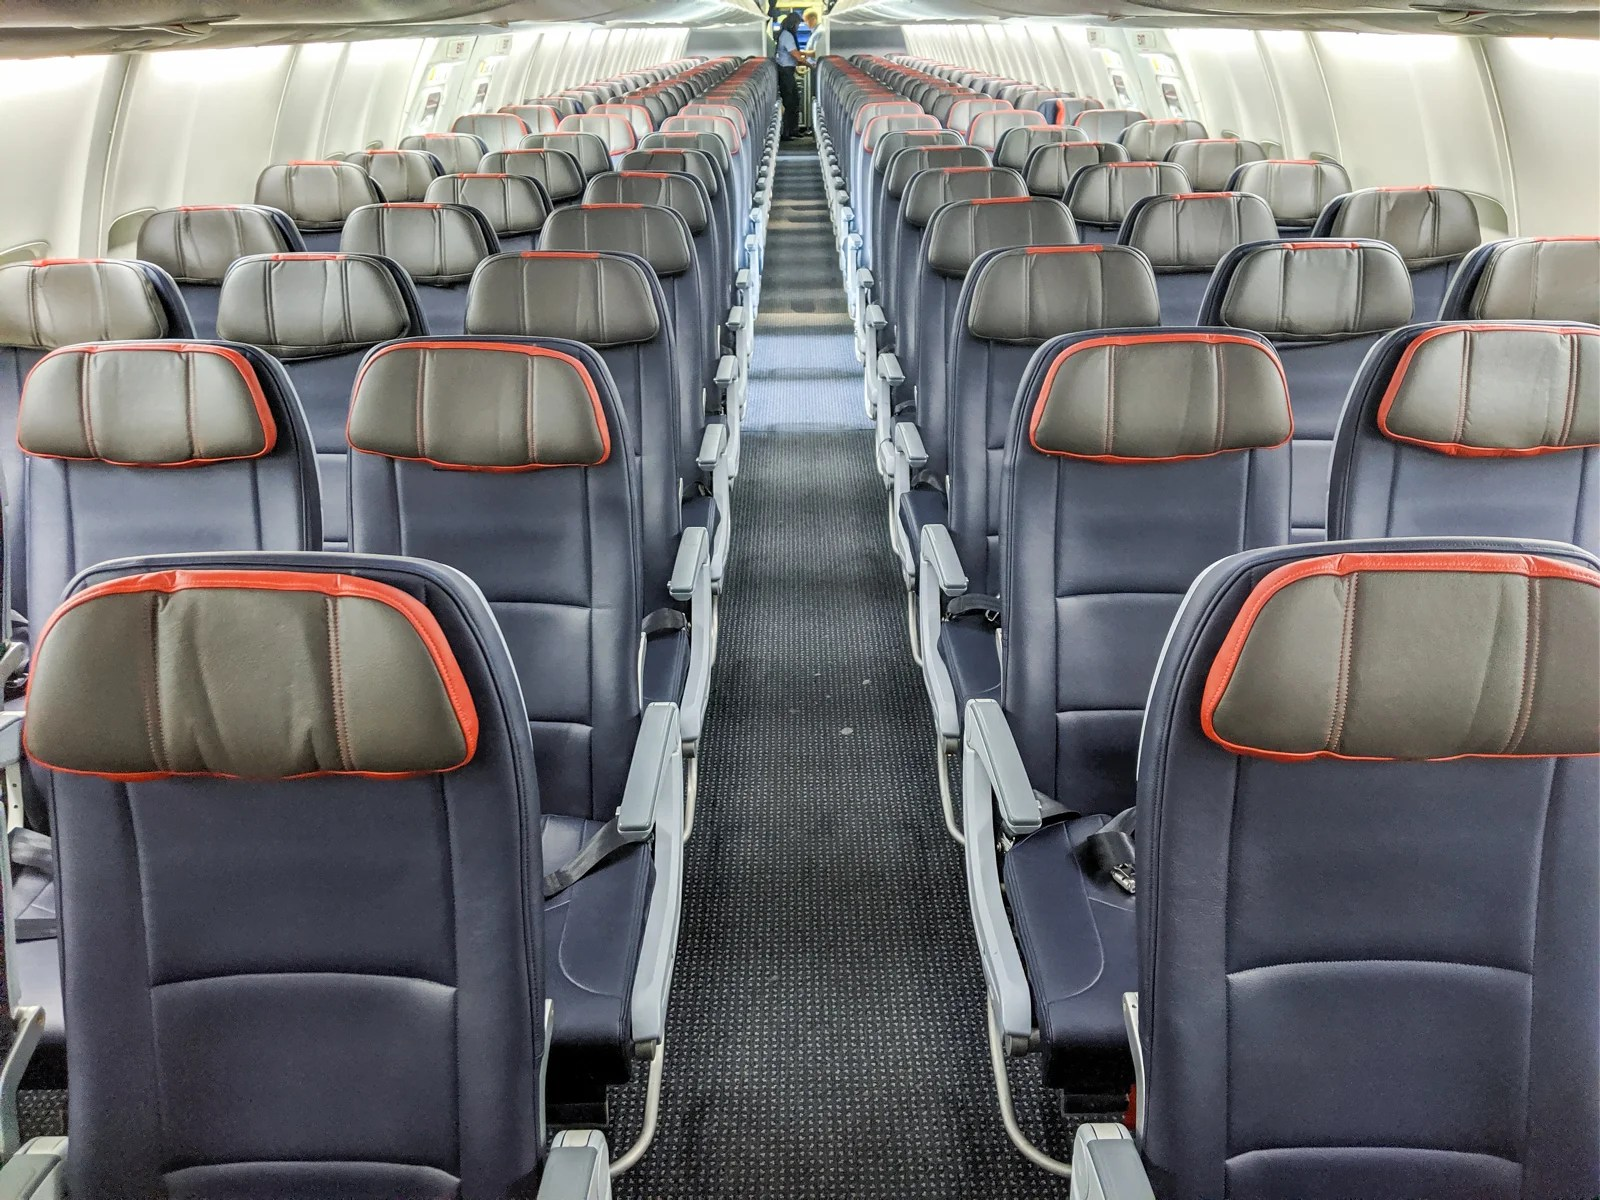 A beginner's guide to American Airlines economy seats